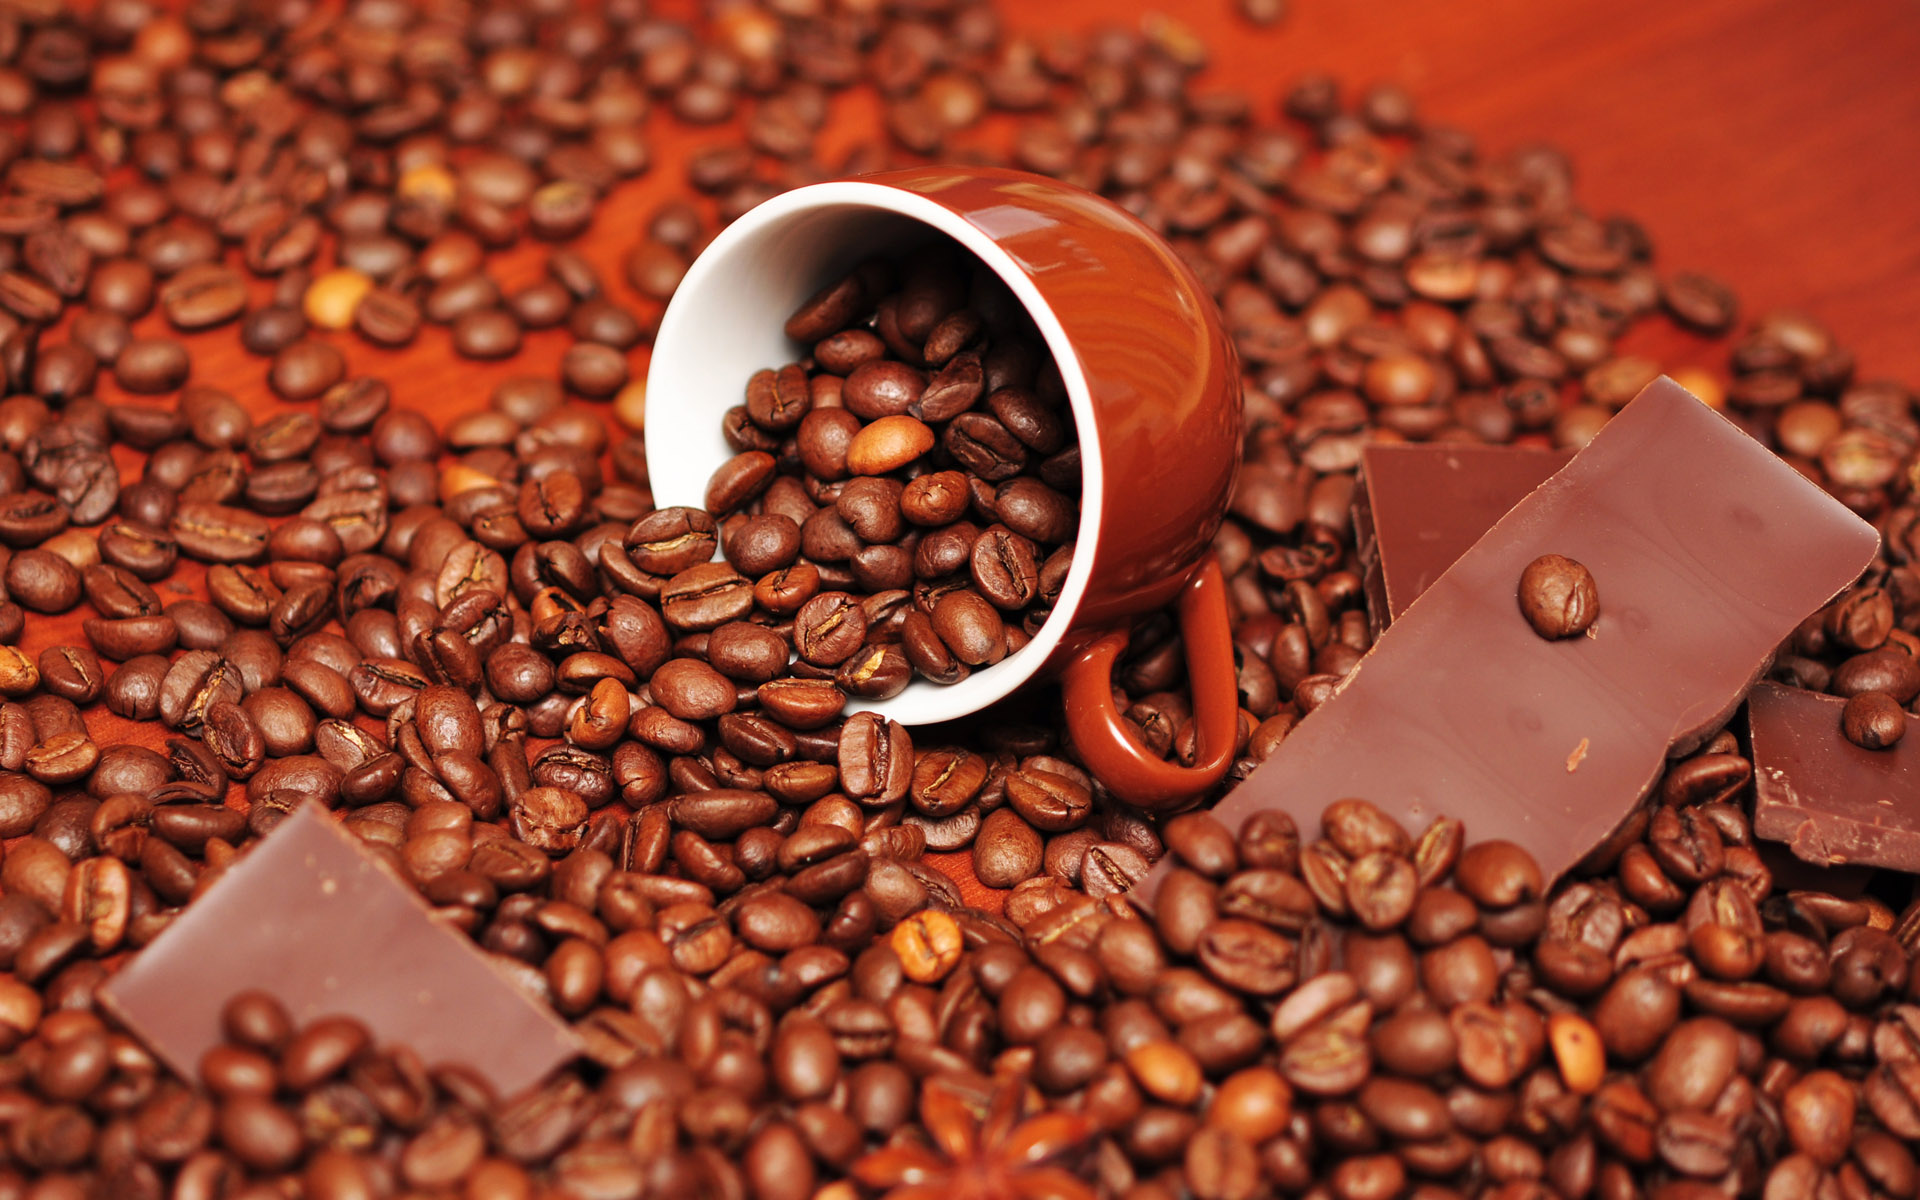 coffee chocolate, coffee beans, download photo, background, coffee, texture